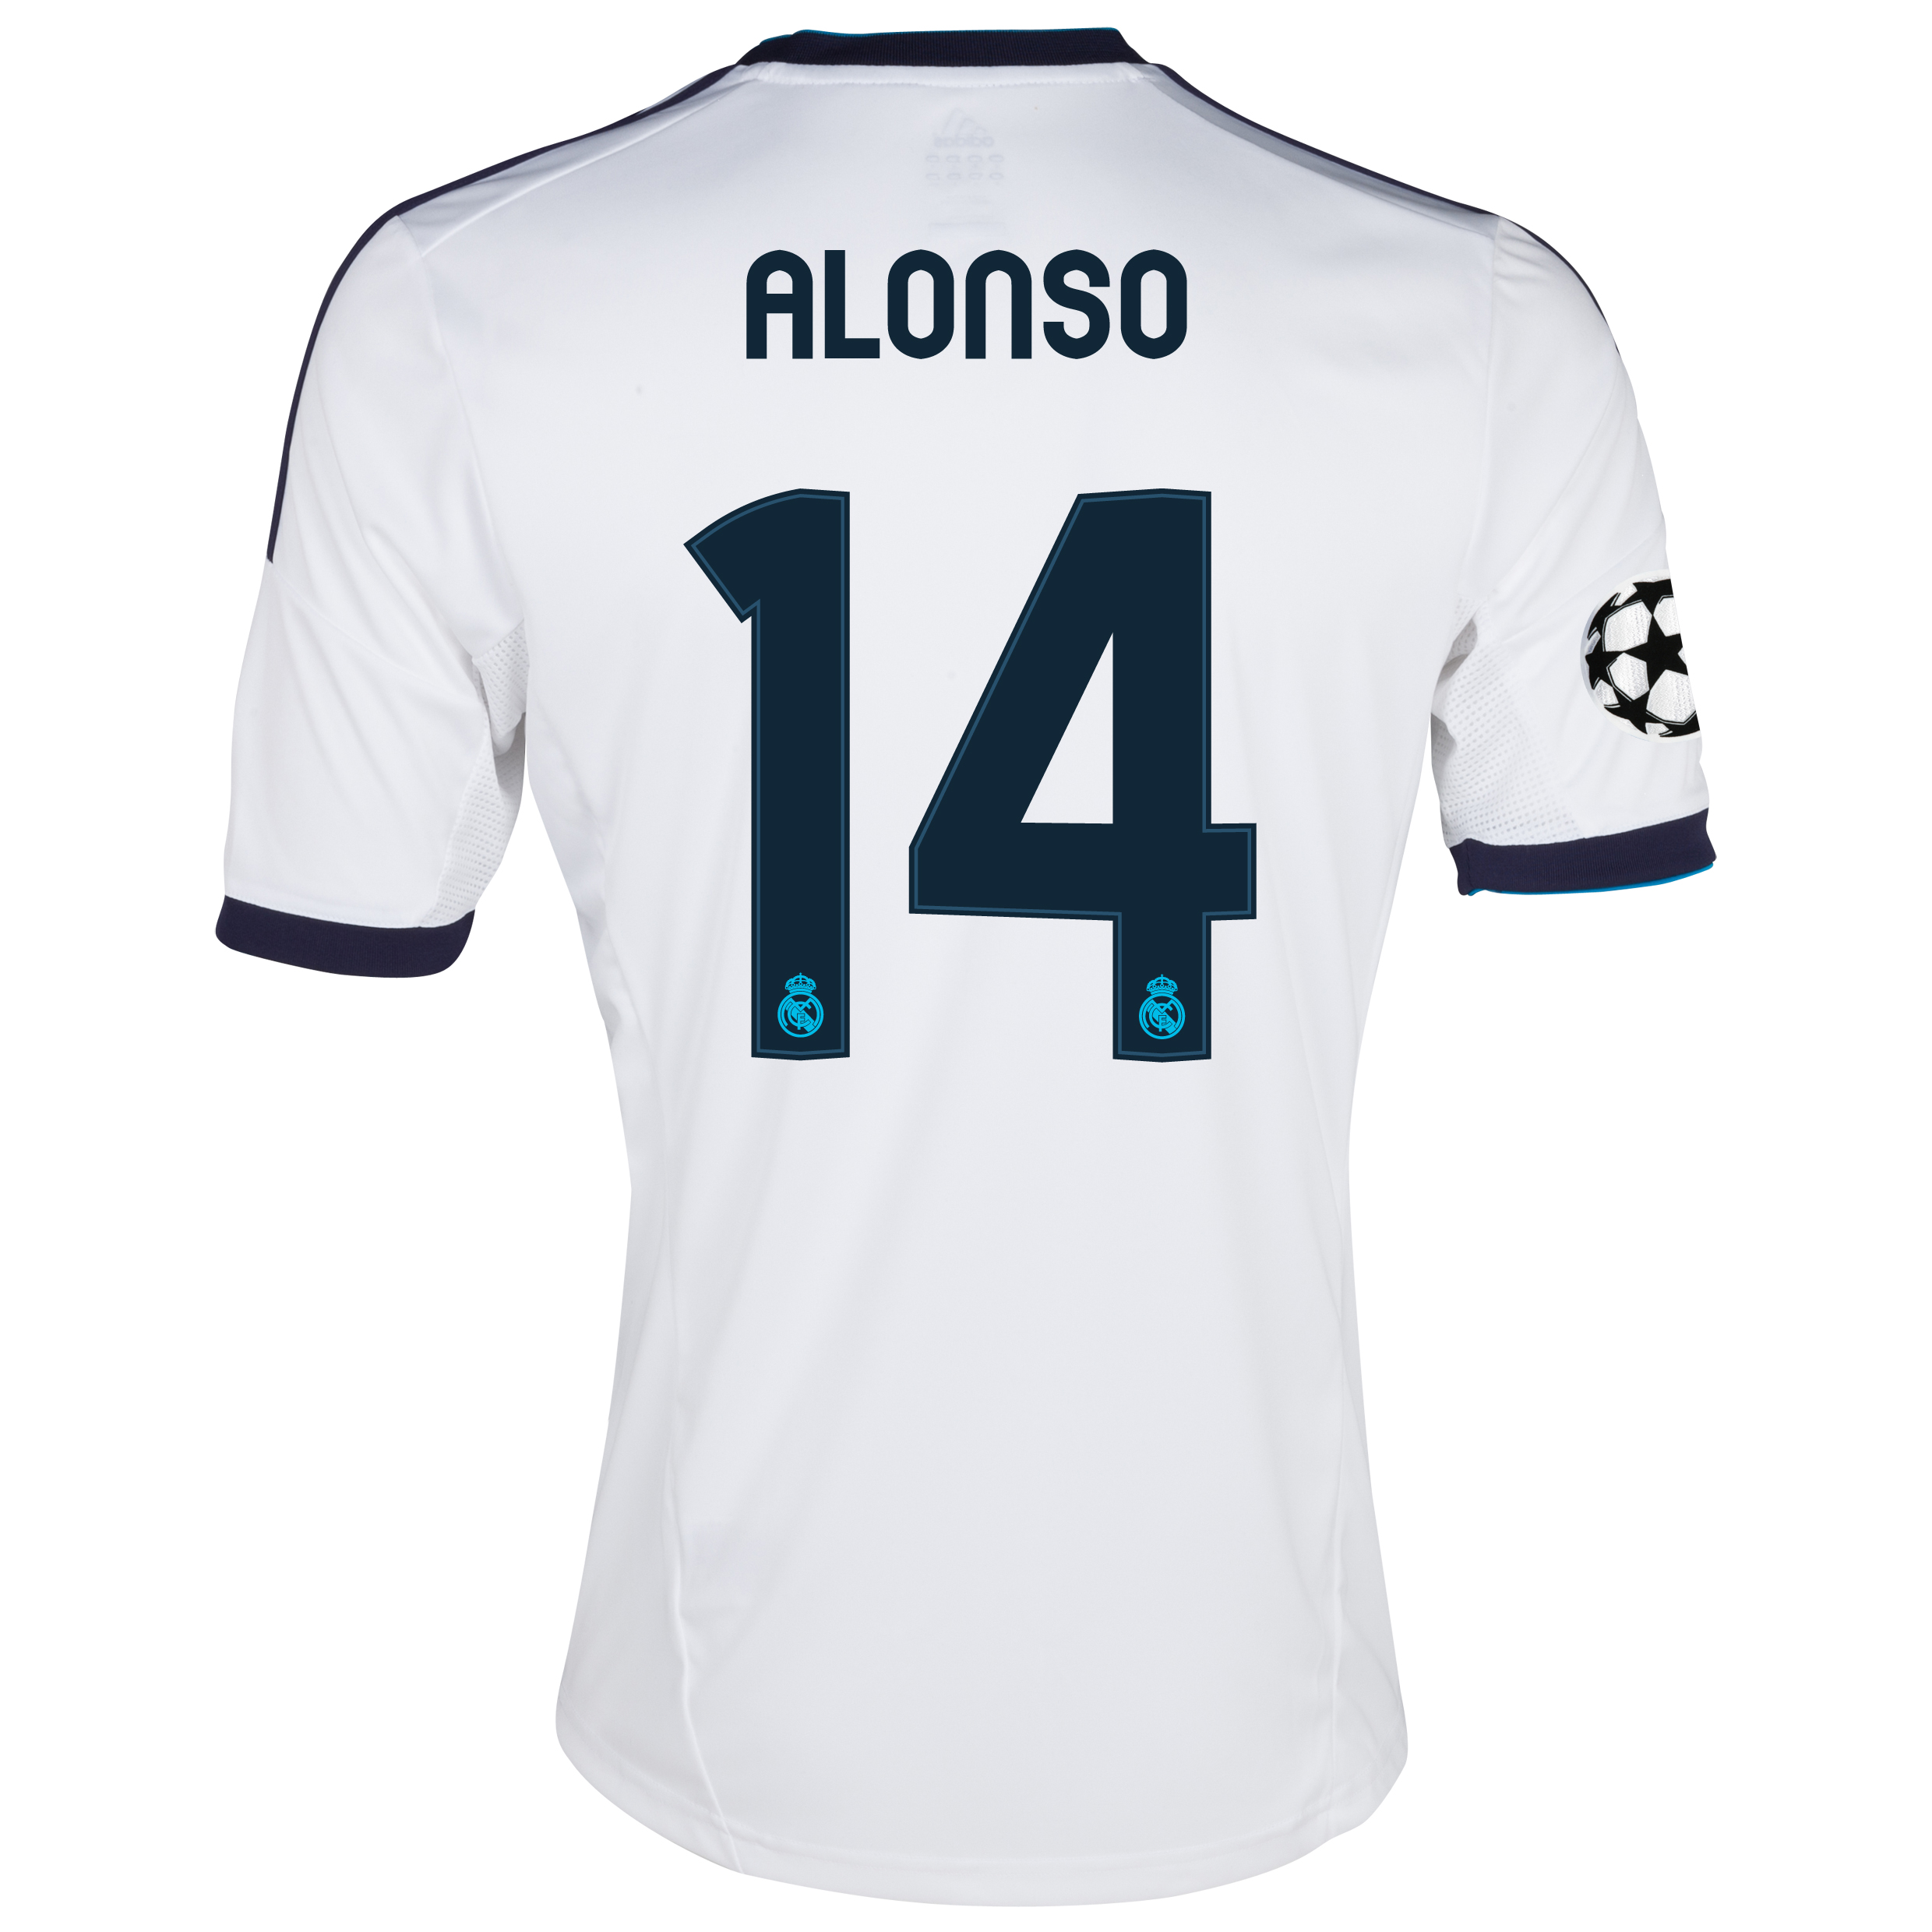 Real Madrid UEFA Champions League Home Shirt 2012/13 with Alonso 14 printing